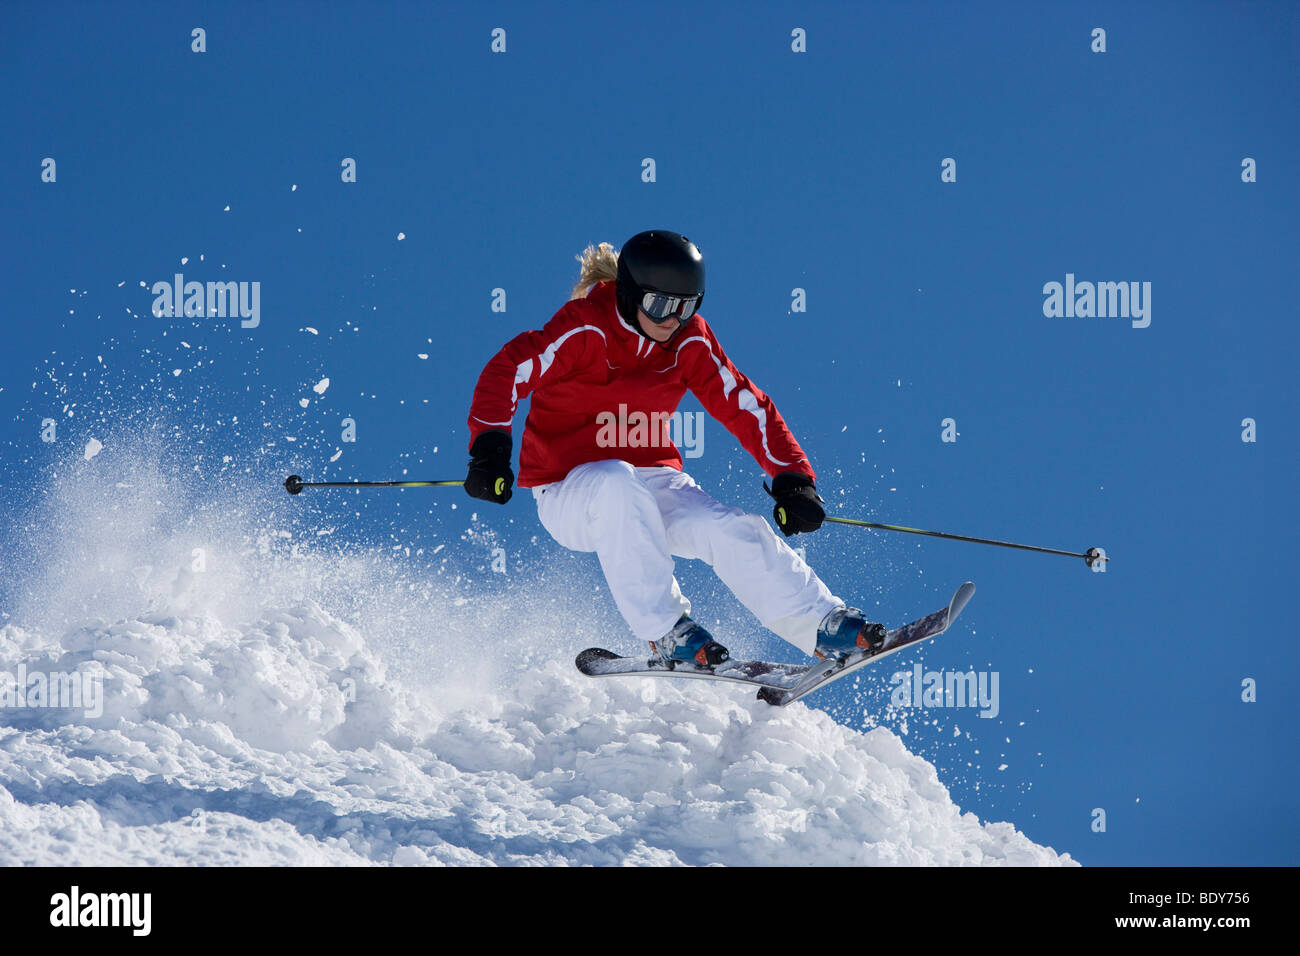 Girl in red getting air time. - Stock Image